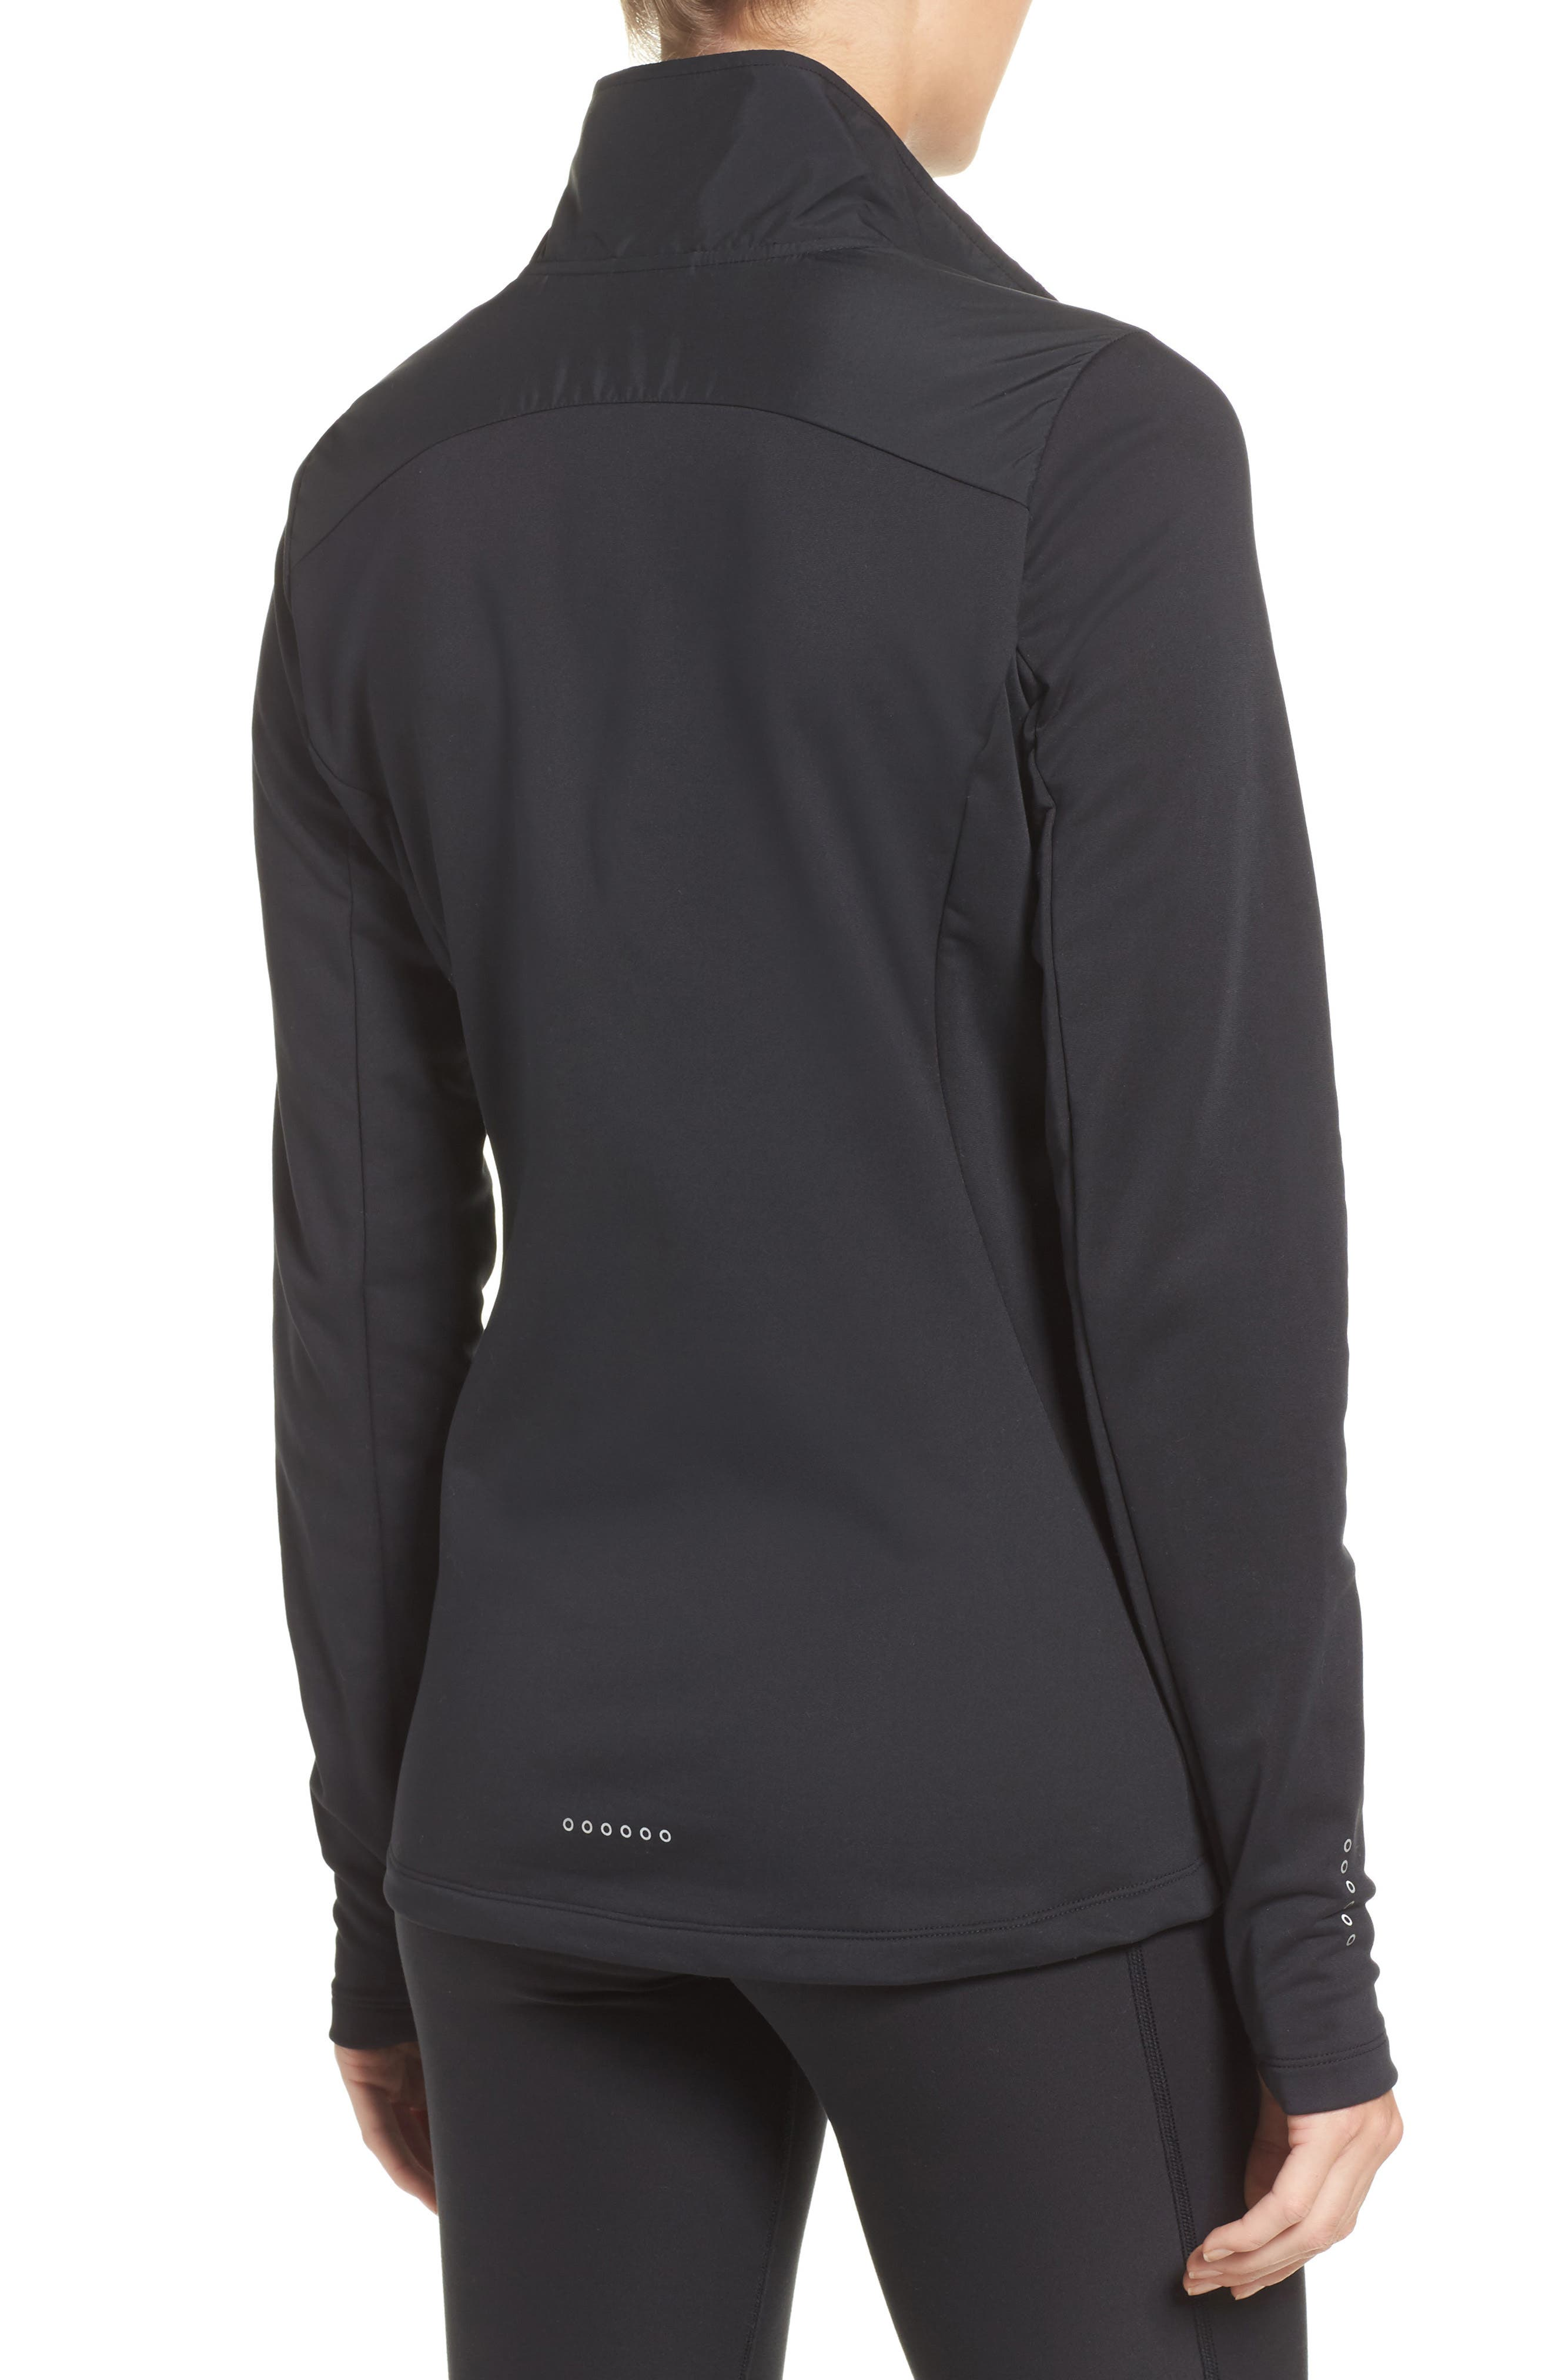 Essentials Running Jacket,                             Alternate thumbnail 2, color,                             010